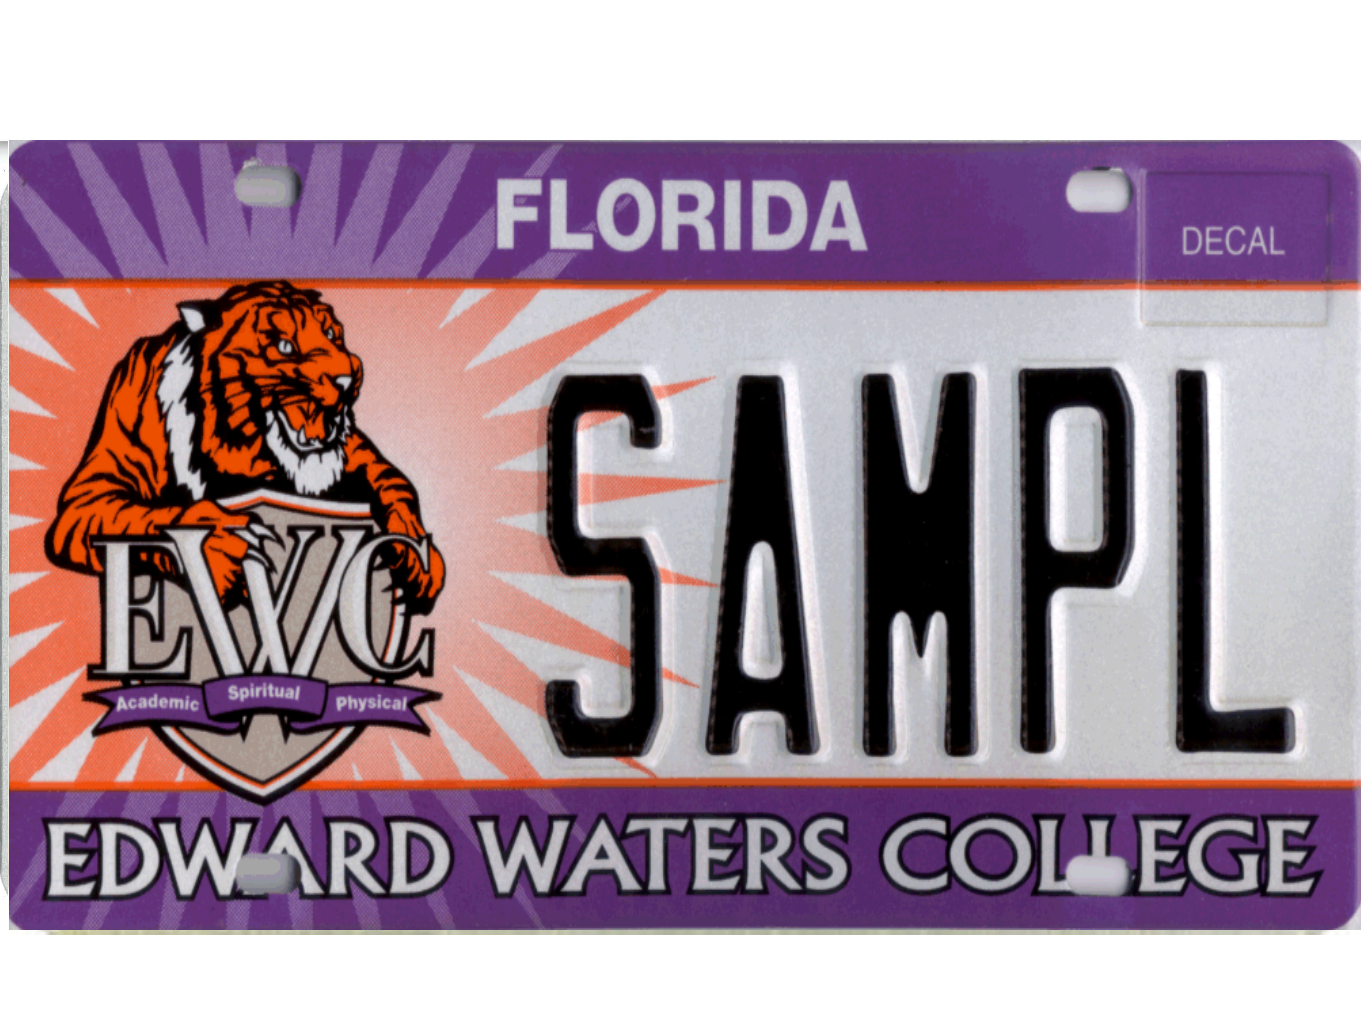 The Edward Waters College license plate.